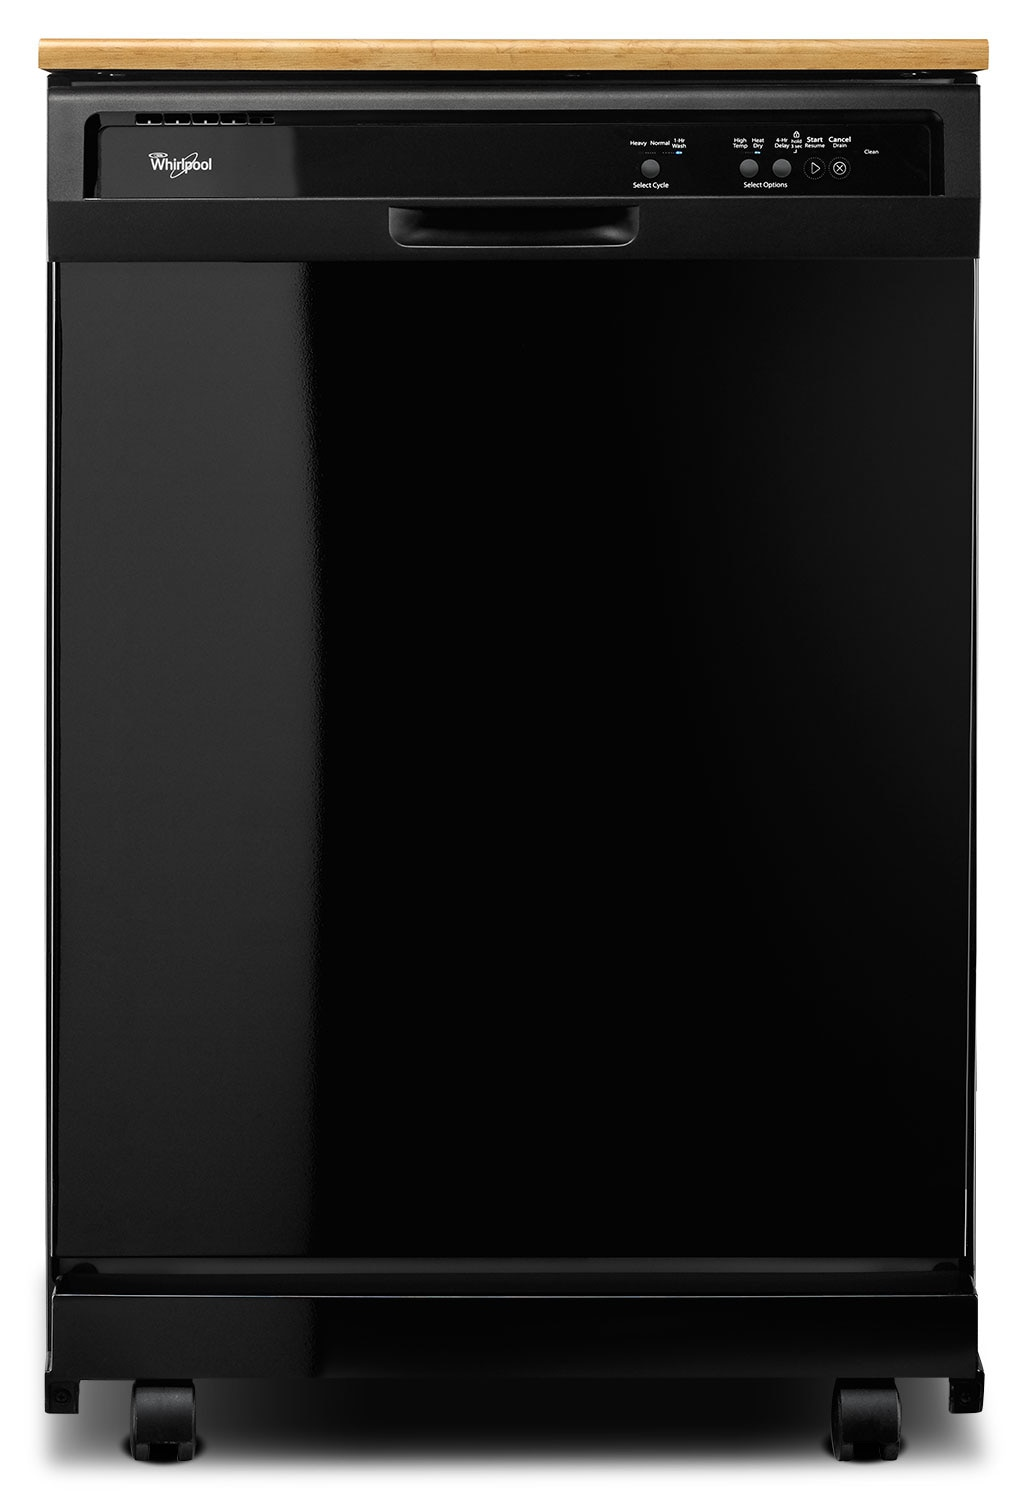 Whirlpool Portable Dishwasher – WDP340PAFB